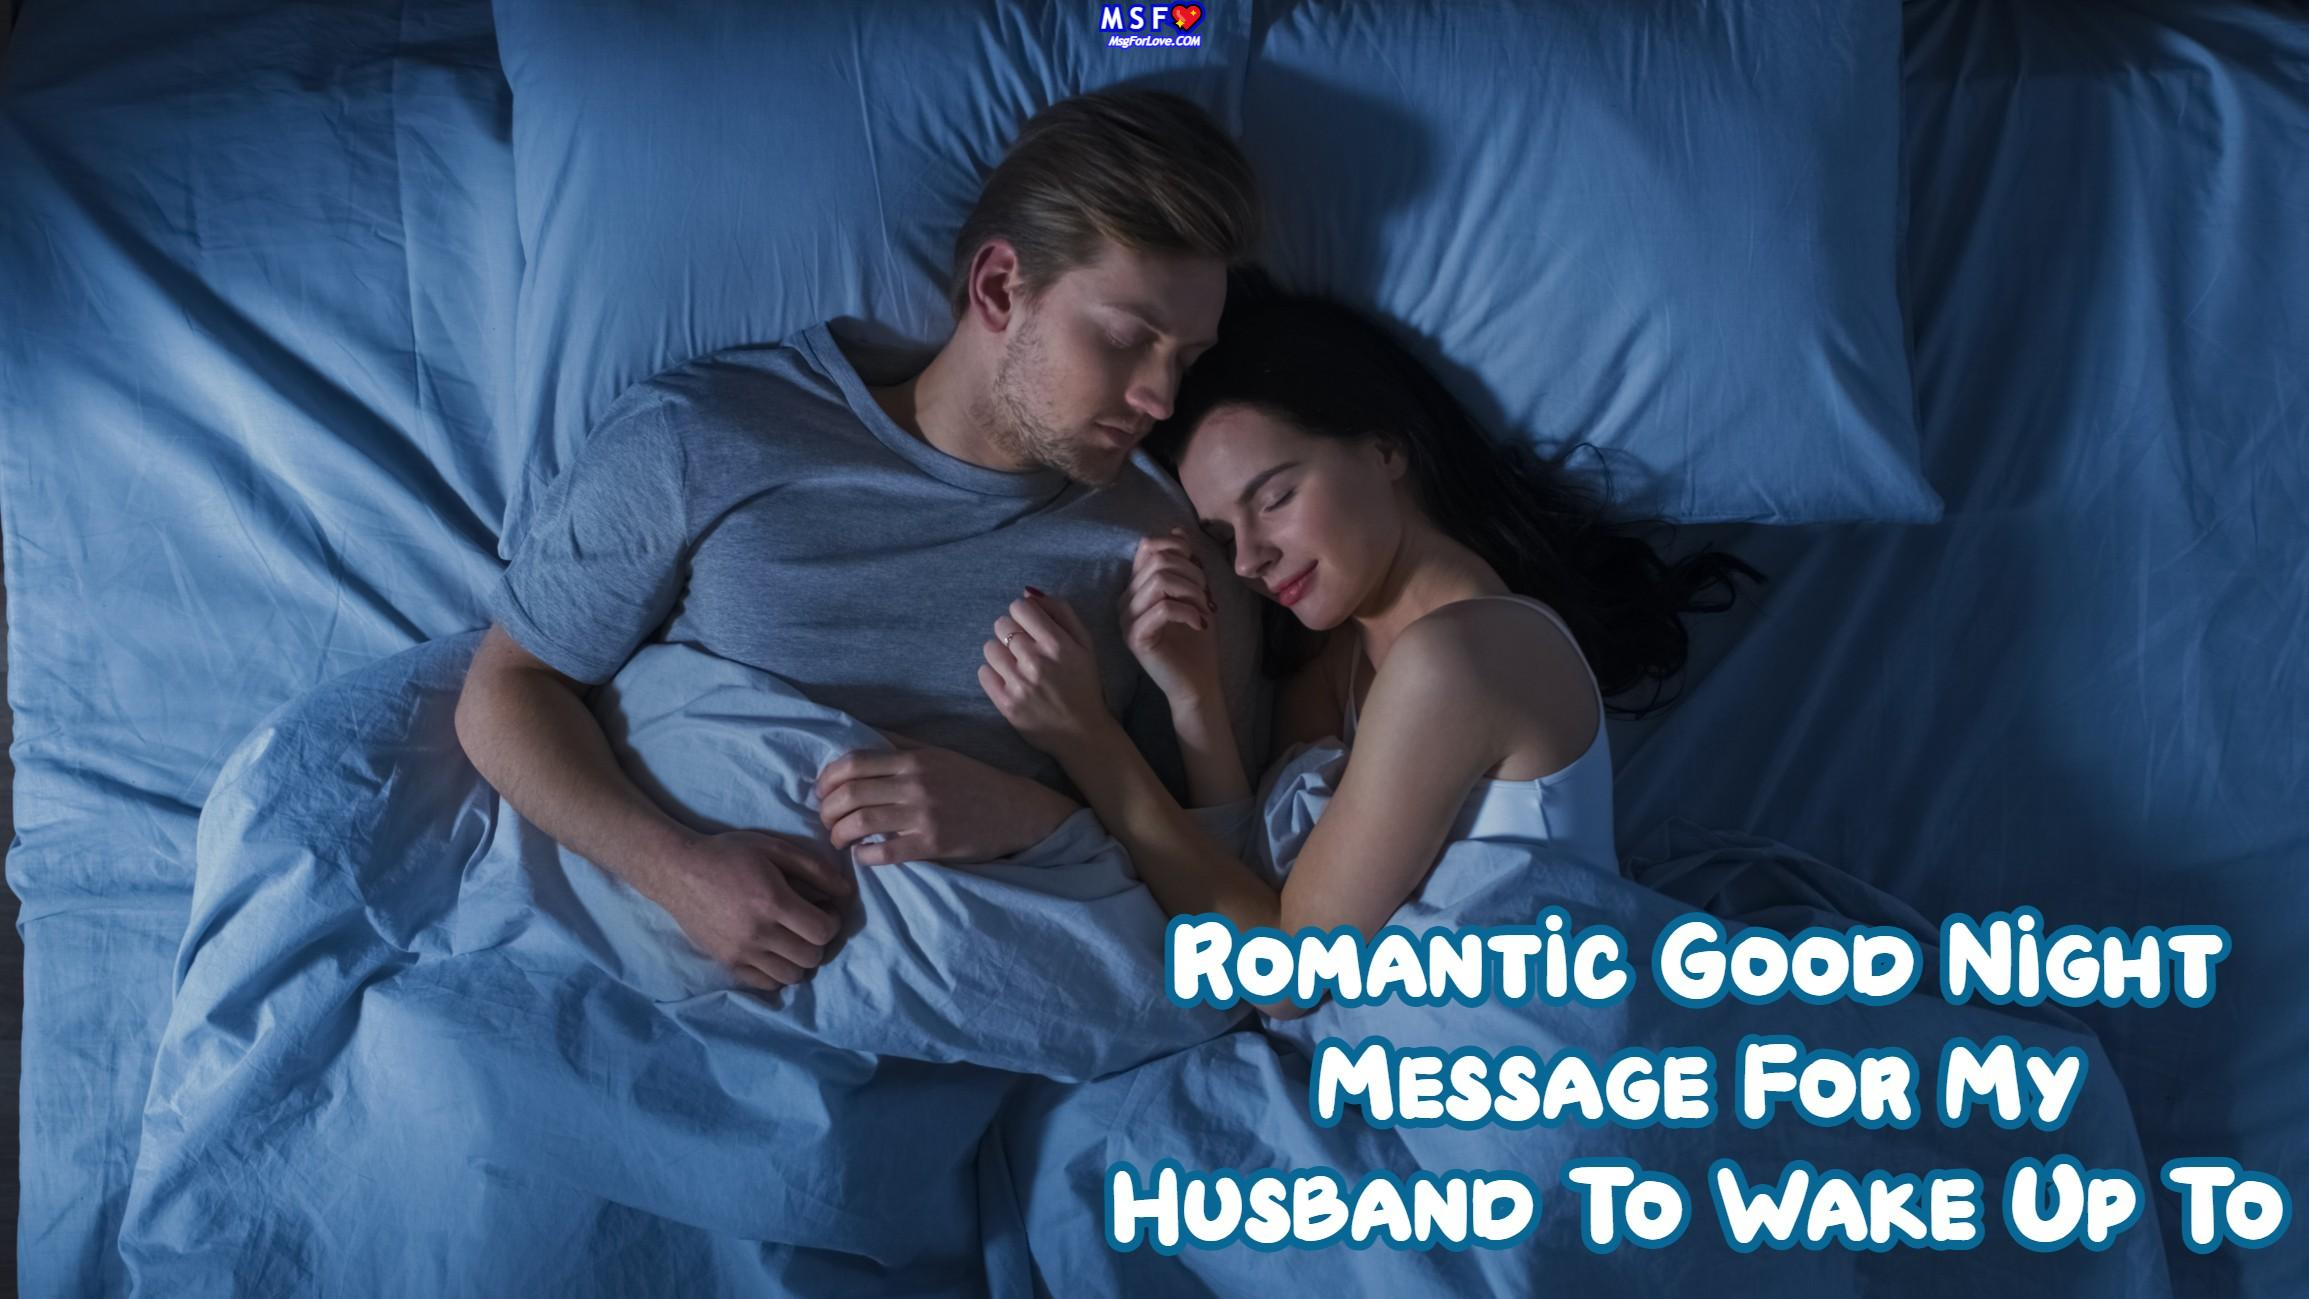 Good Night Message For Husband